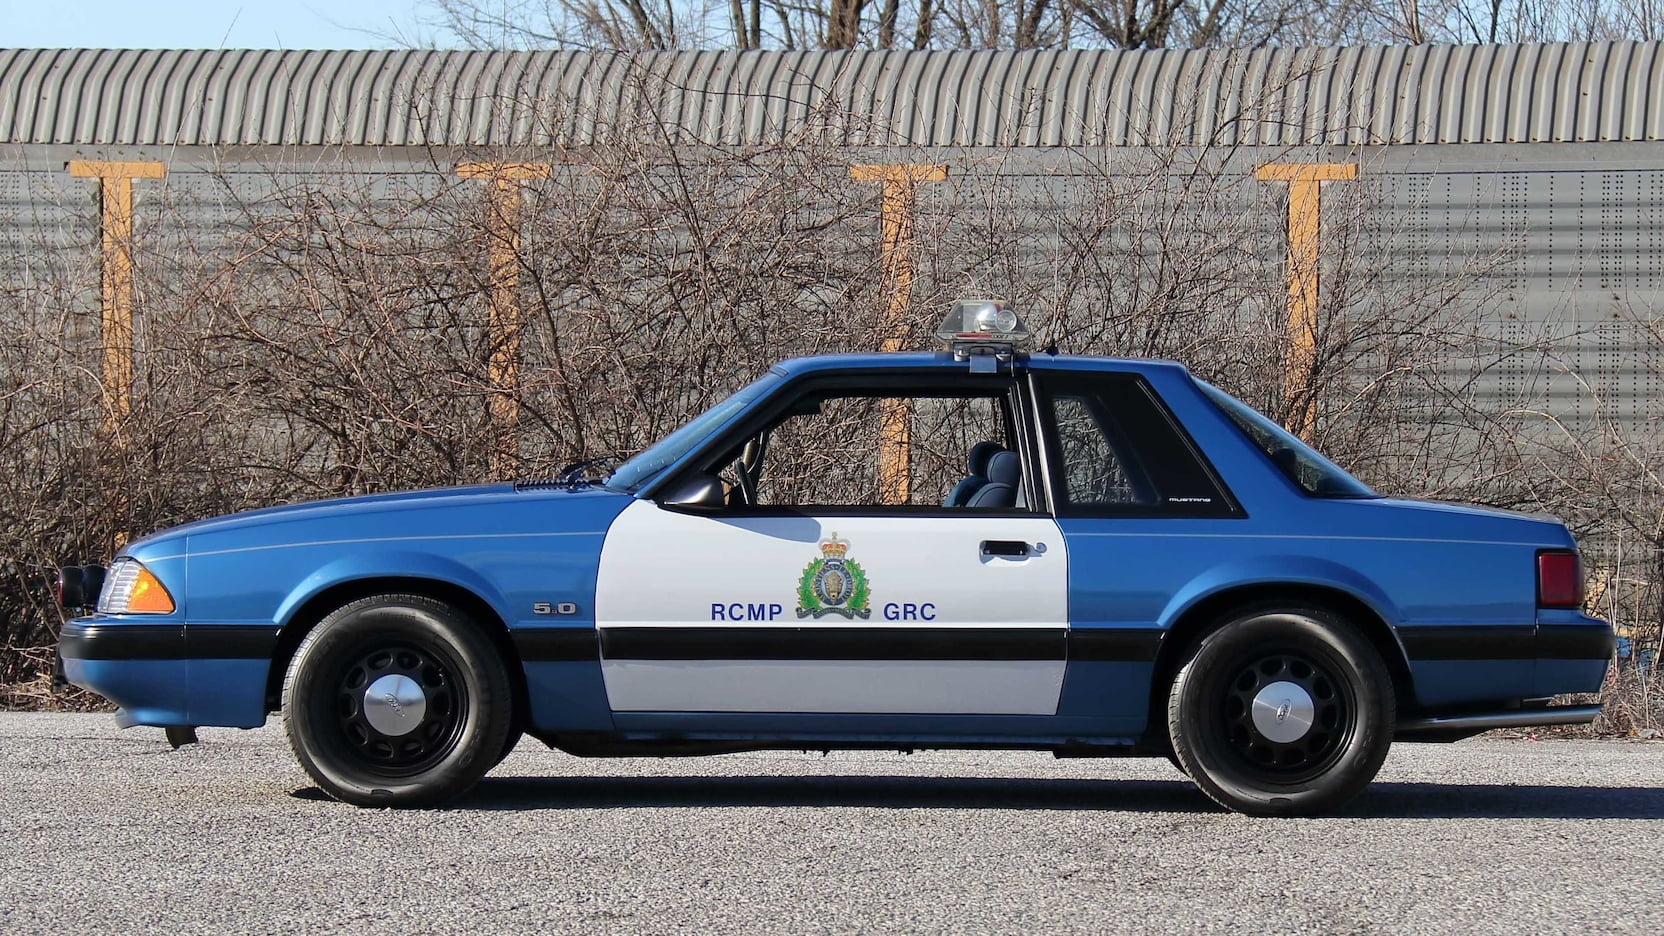 1989 Ford Mustang ssp police car side-view